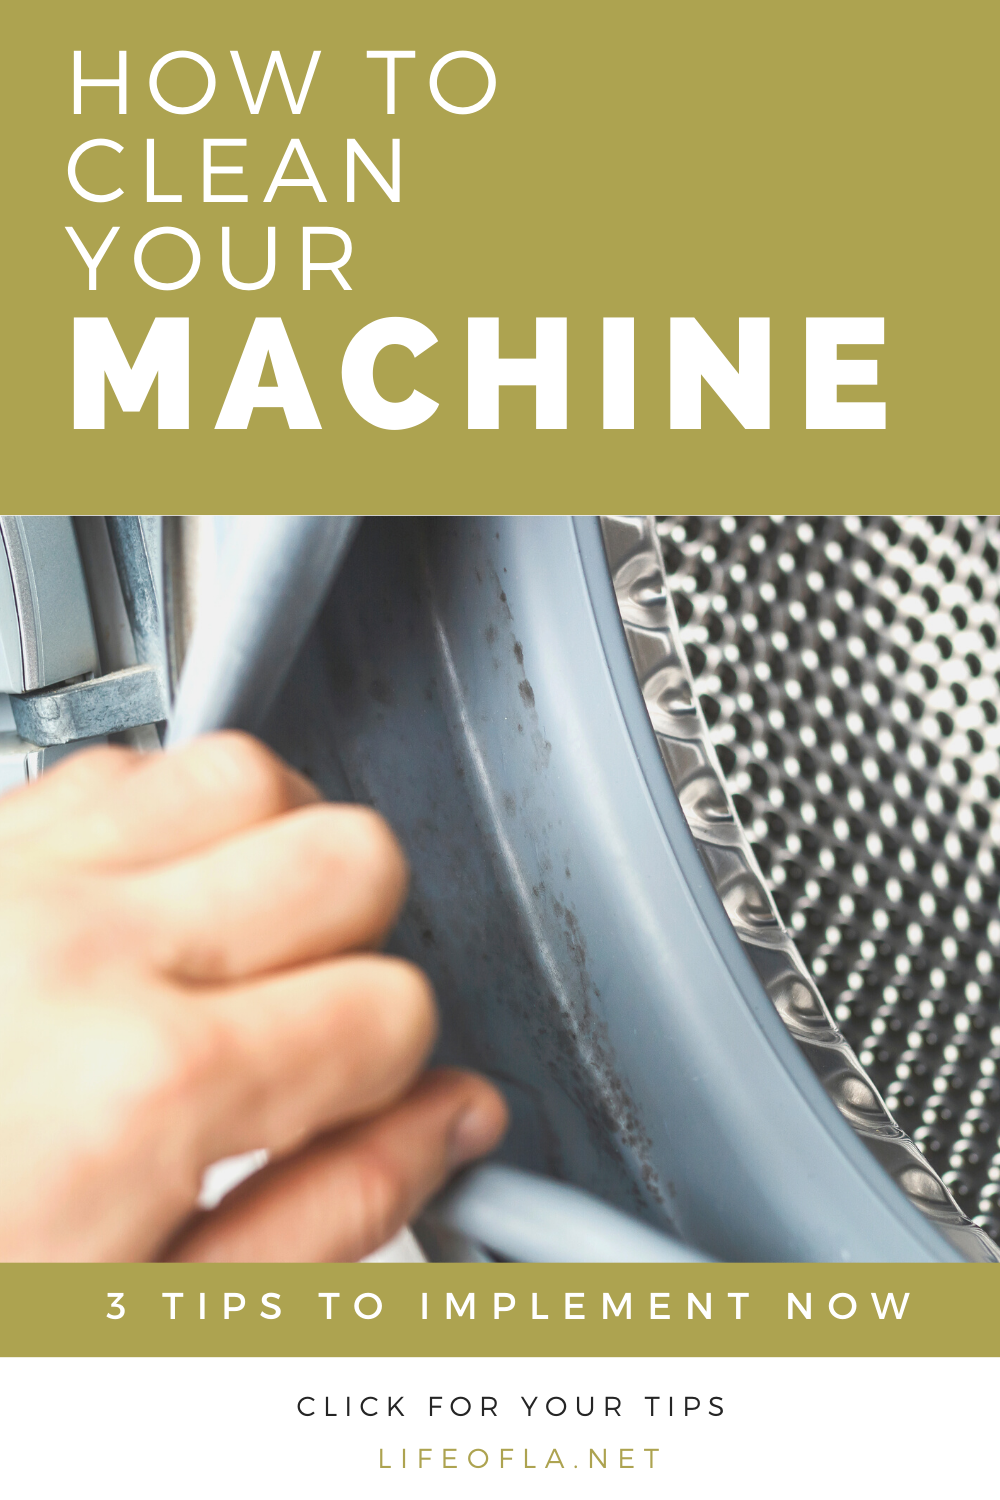 How to clean your washing machine for fresh clothes and linens